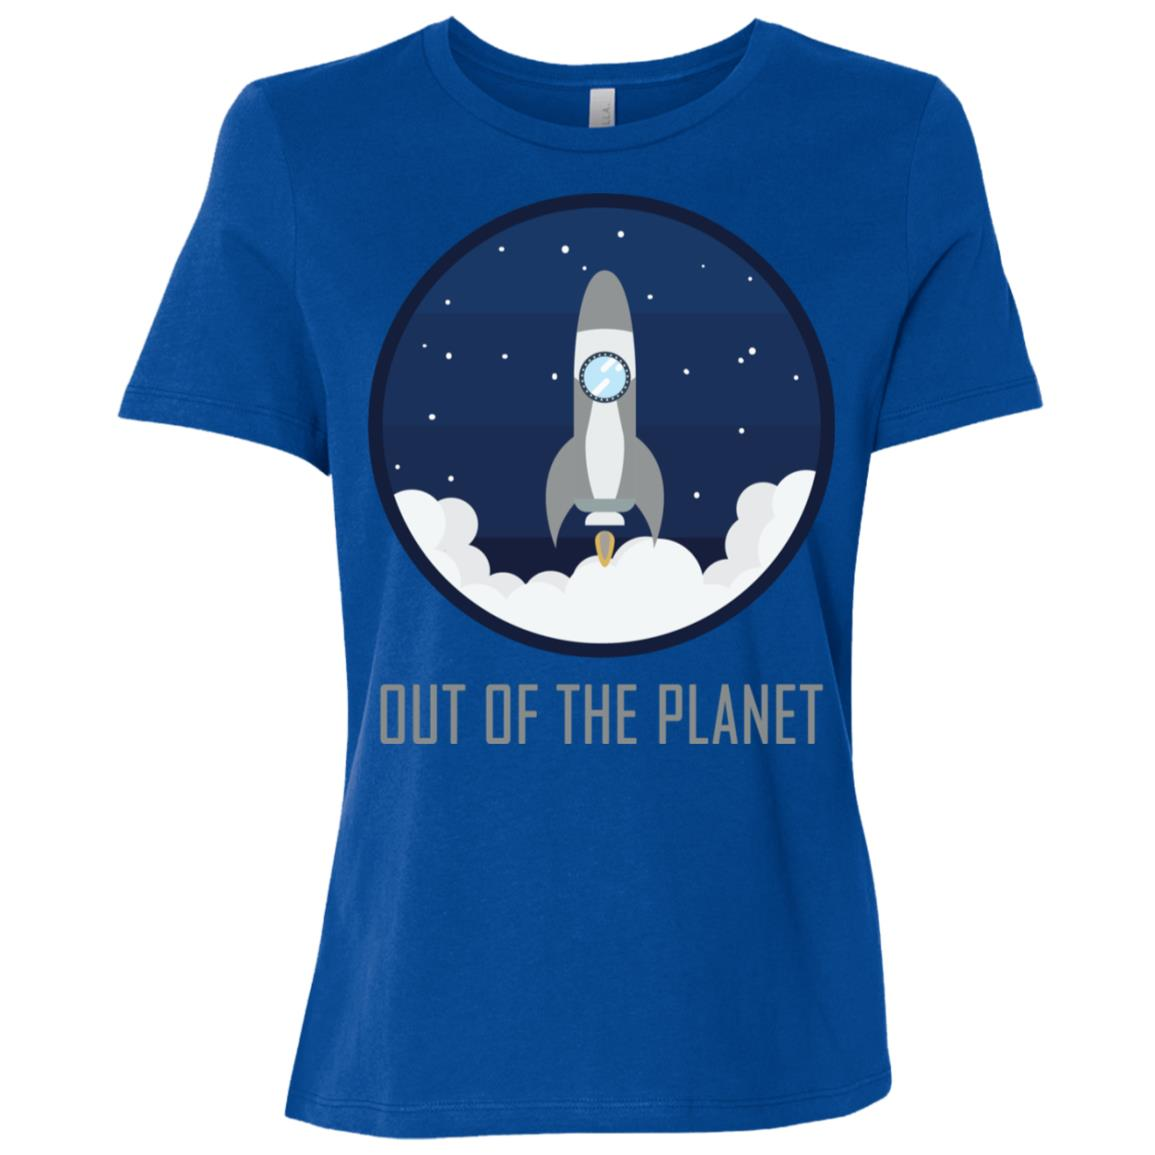 Out of the Planet Space Gift Women Short Sleeve T-Shirt